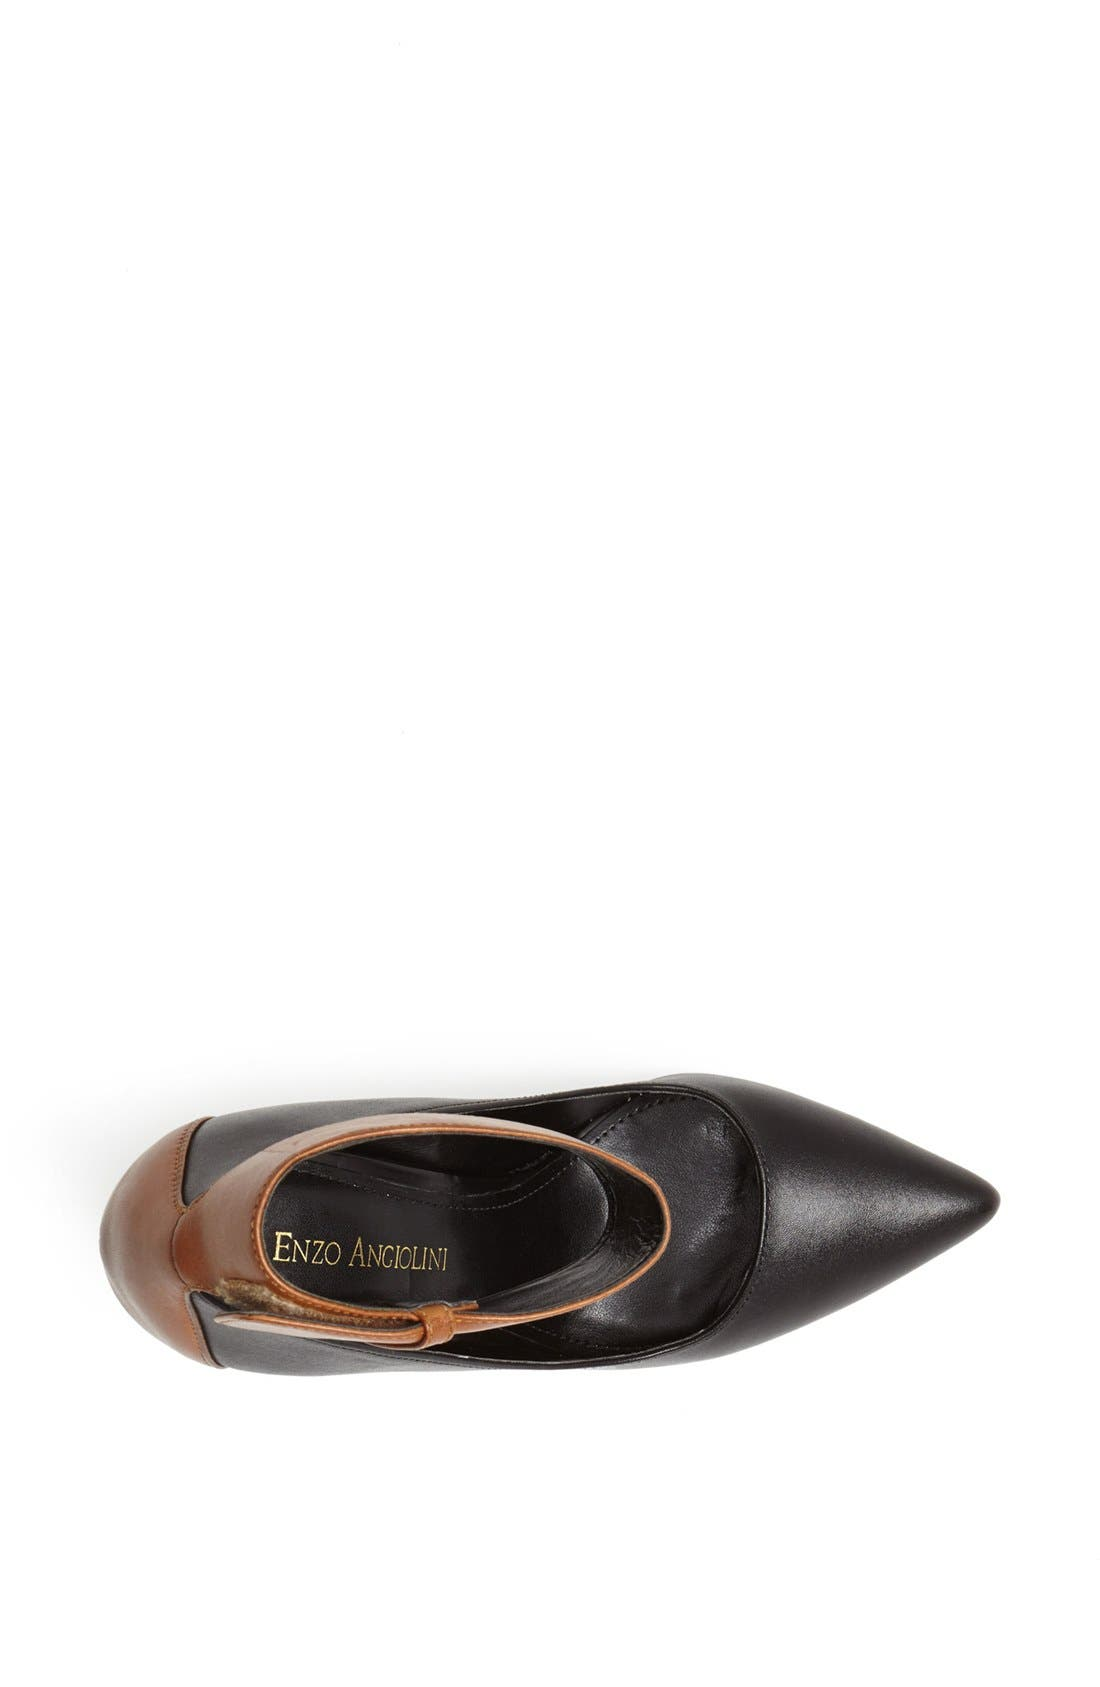 Alternate Image 3  - Enzo Angiolini 'Fastir' Leather Pump